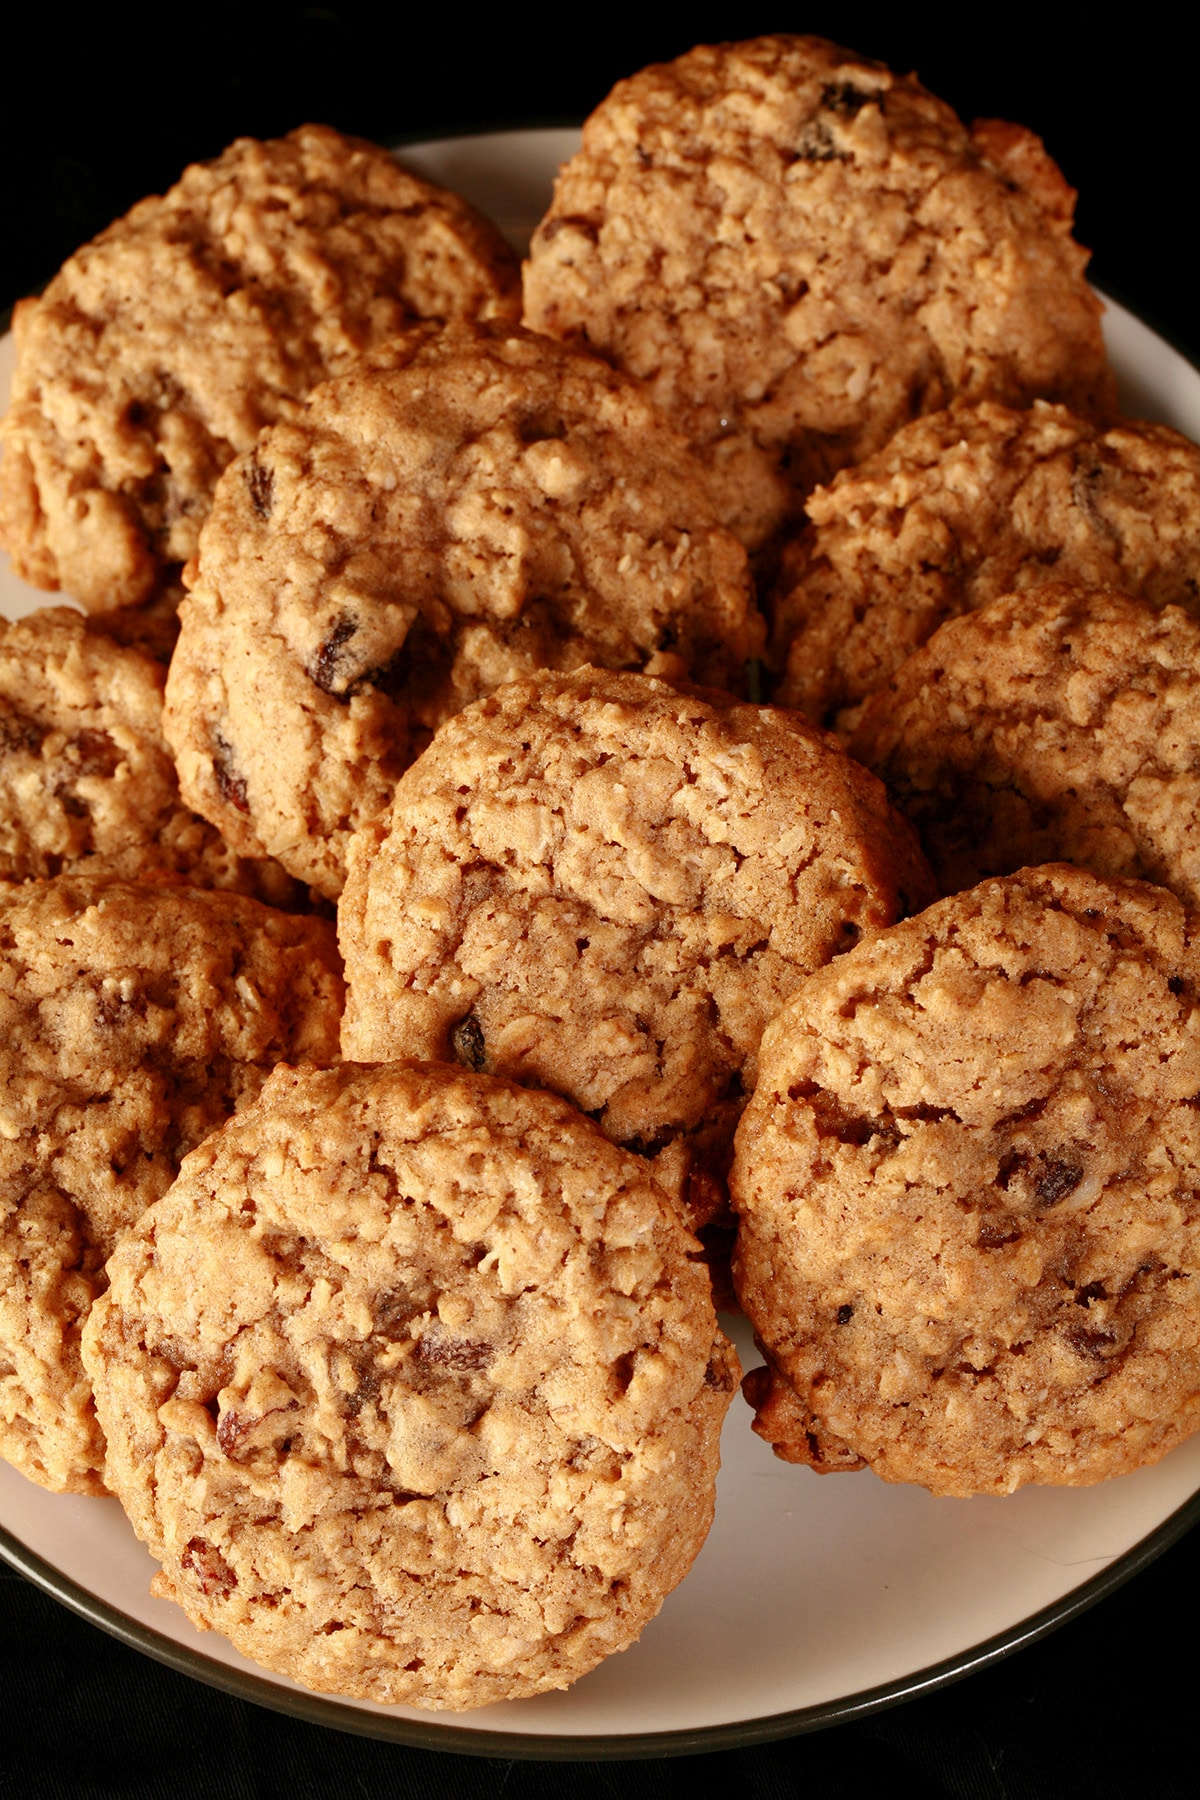 A close up view of a plate of spiced chewy oat raisin cookies.